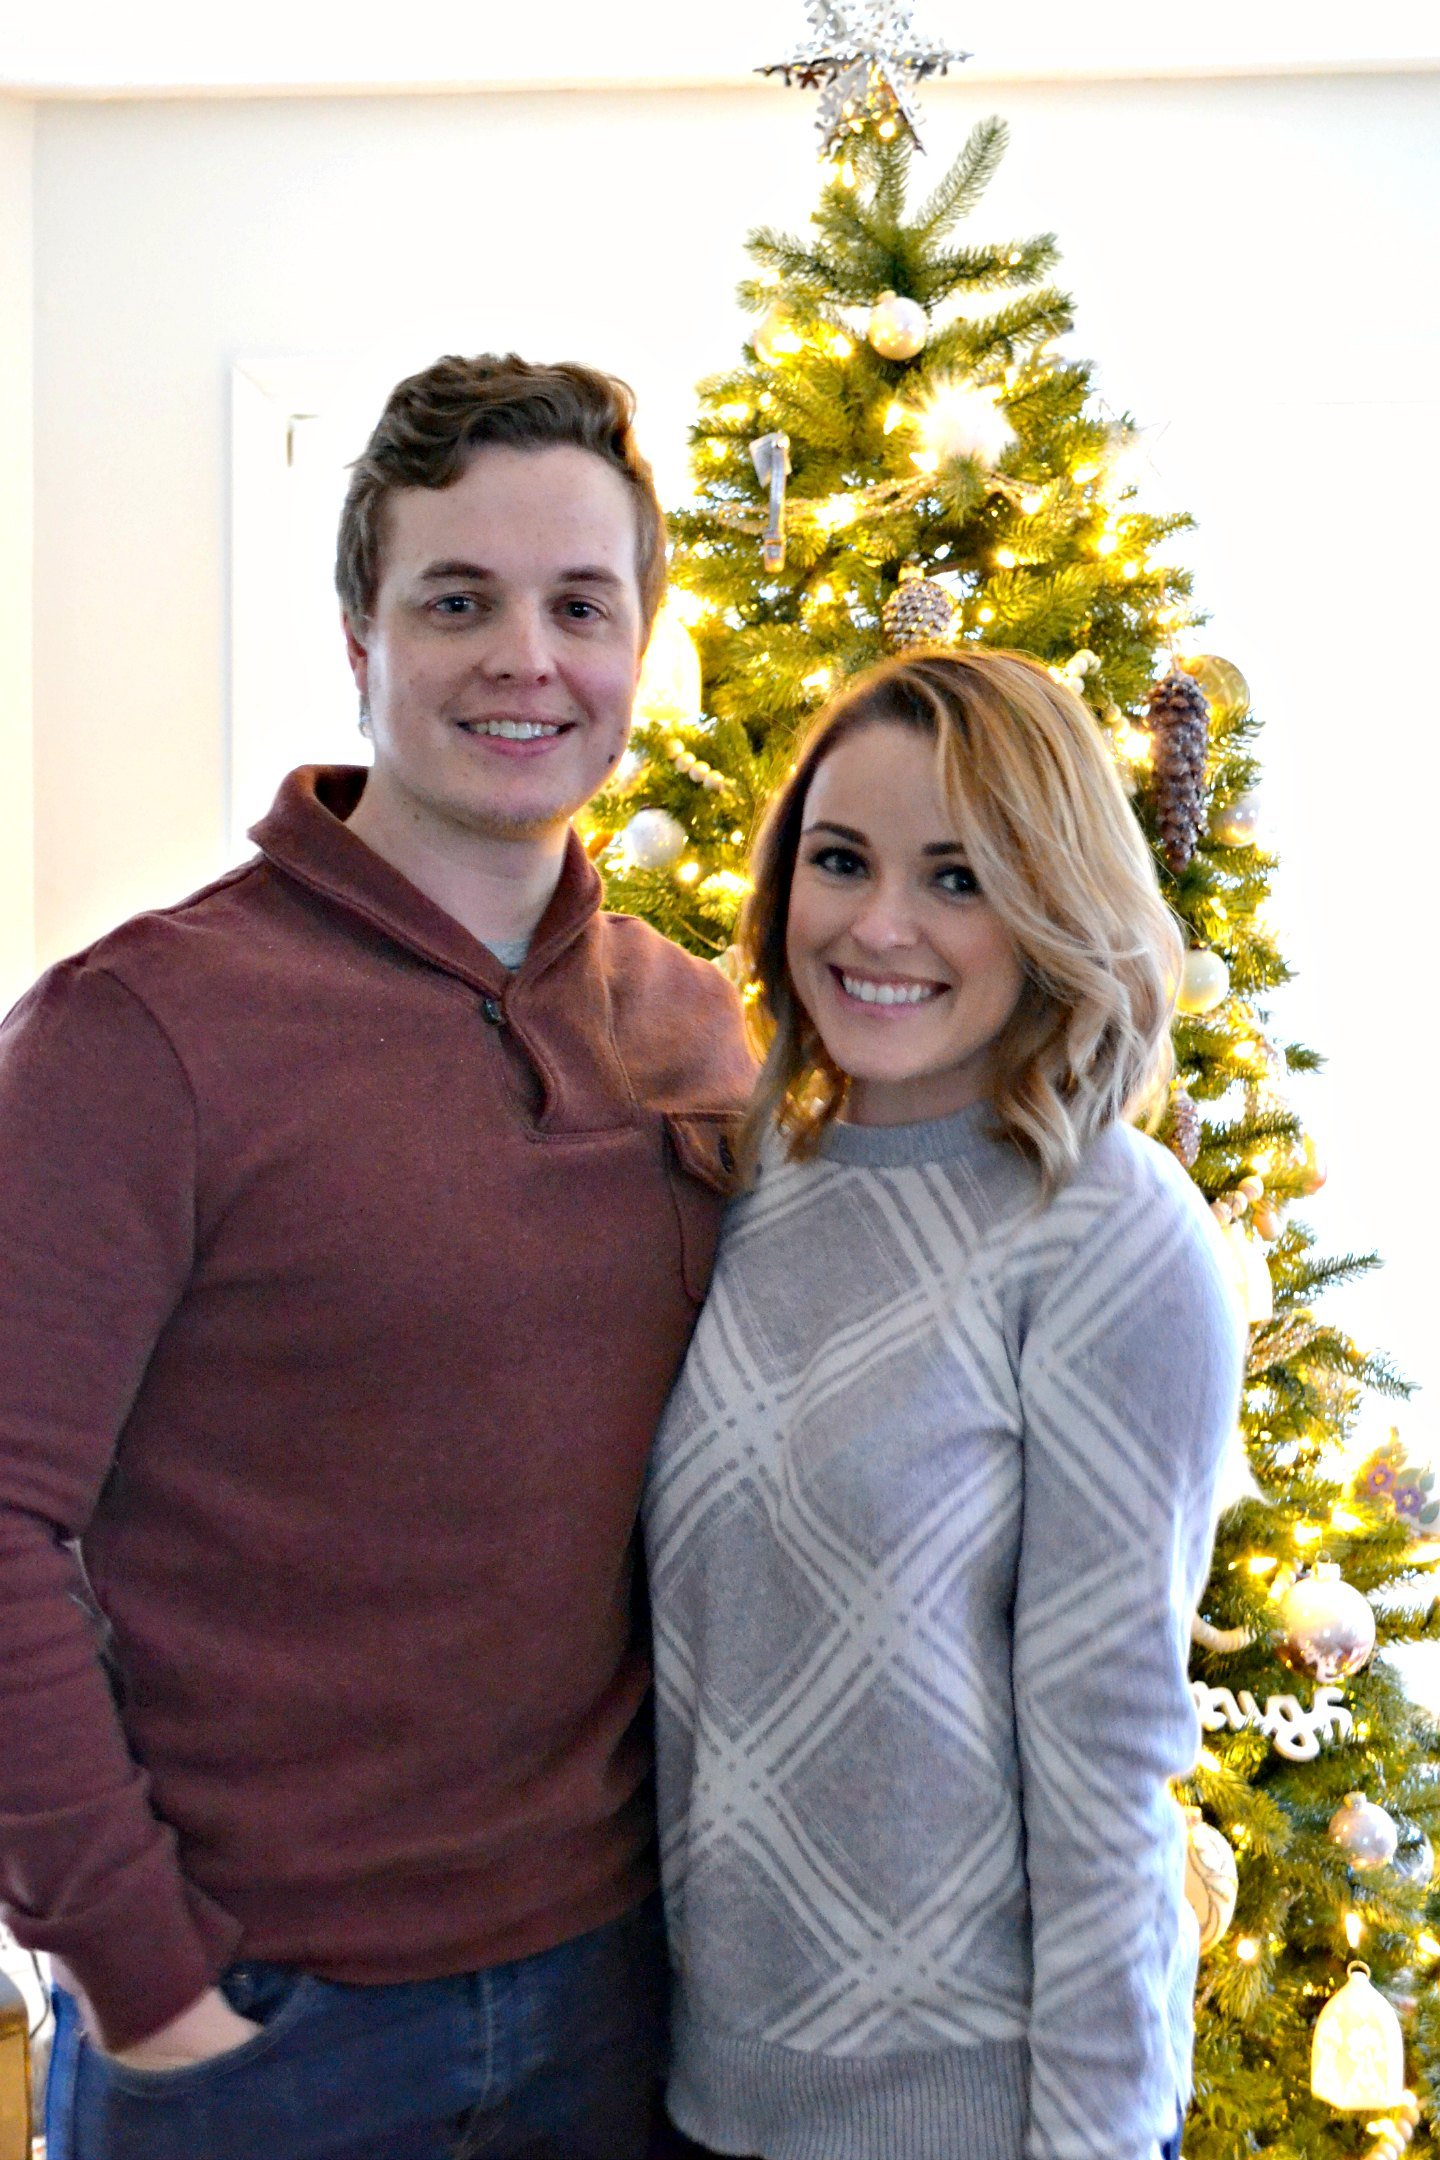 emily and brock christmas 2017